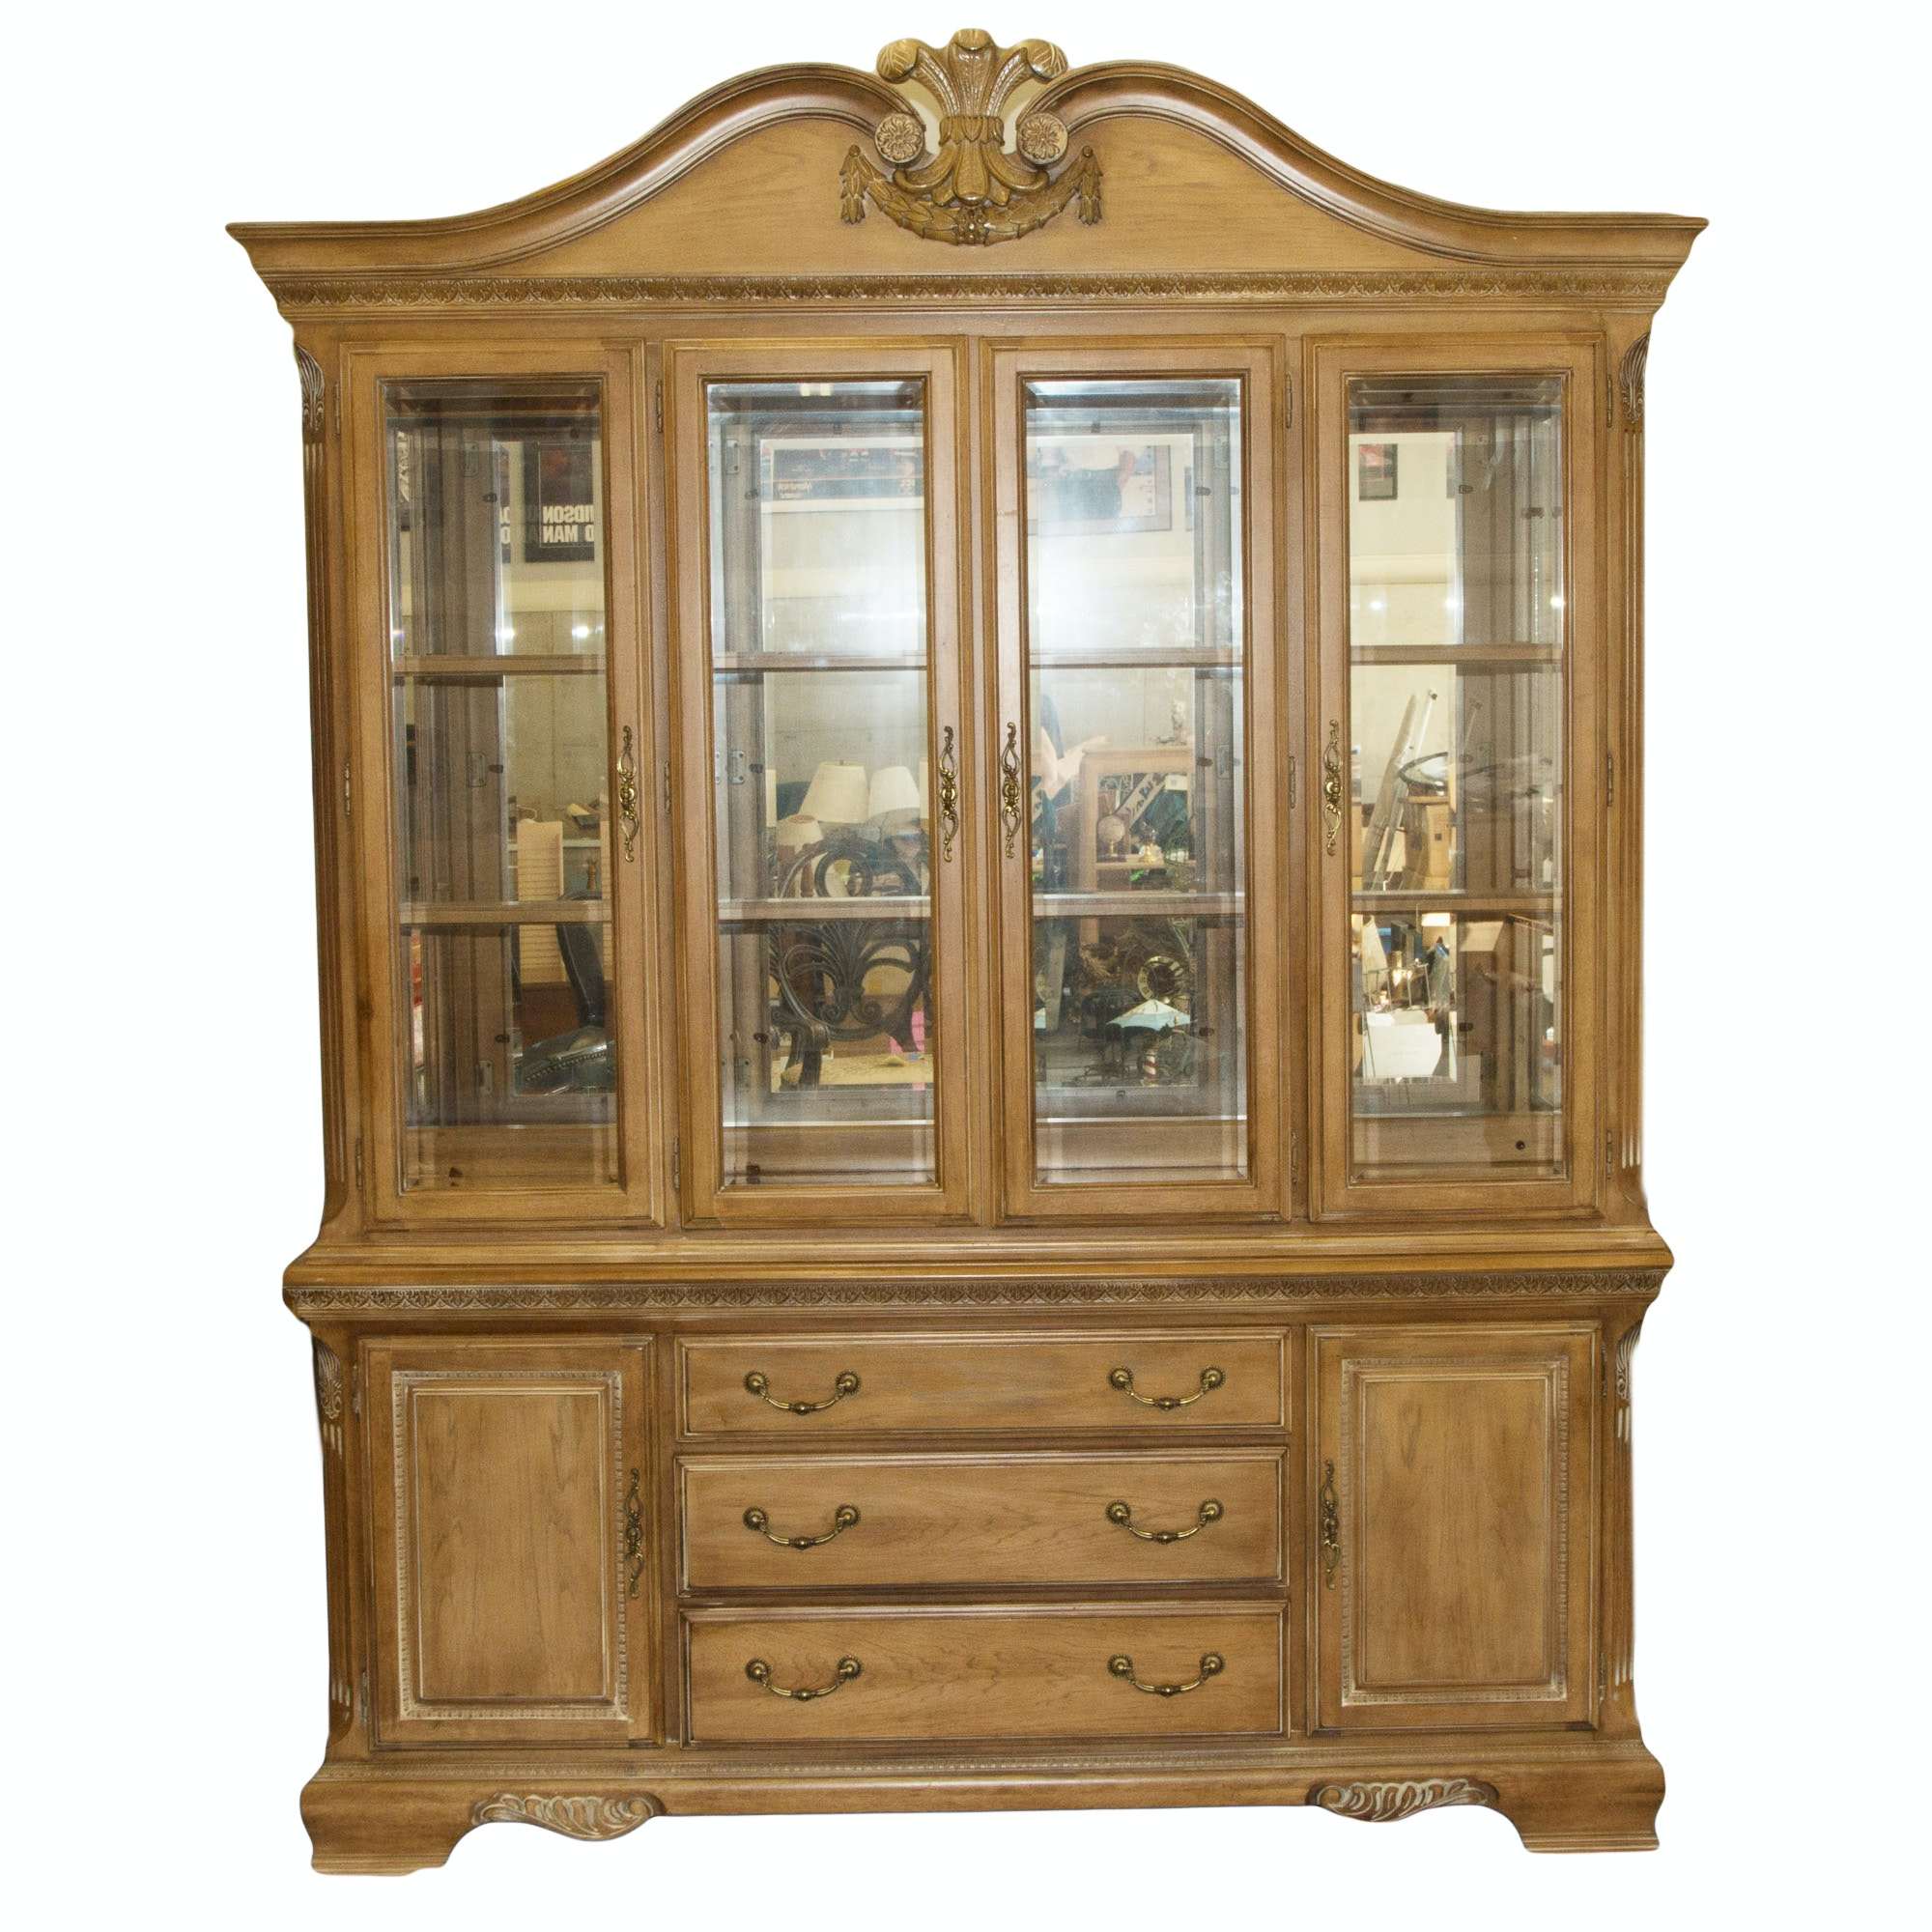 Delightful Lexington Furniture Camden Hall Collection China Cabinet ...